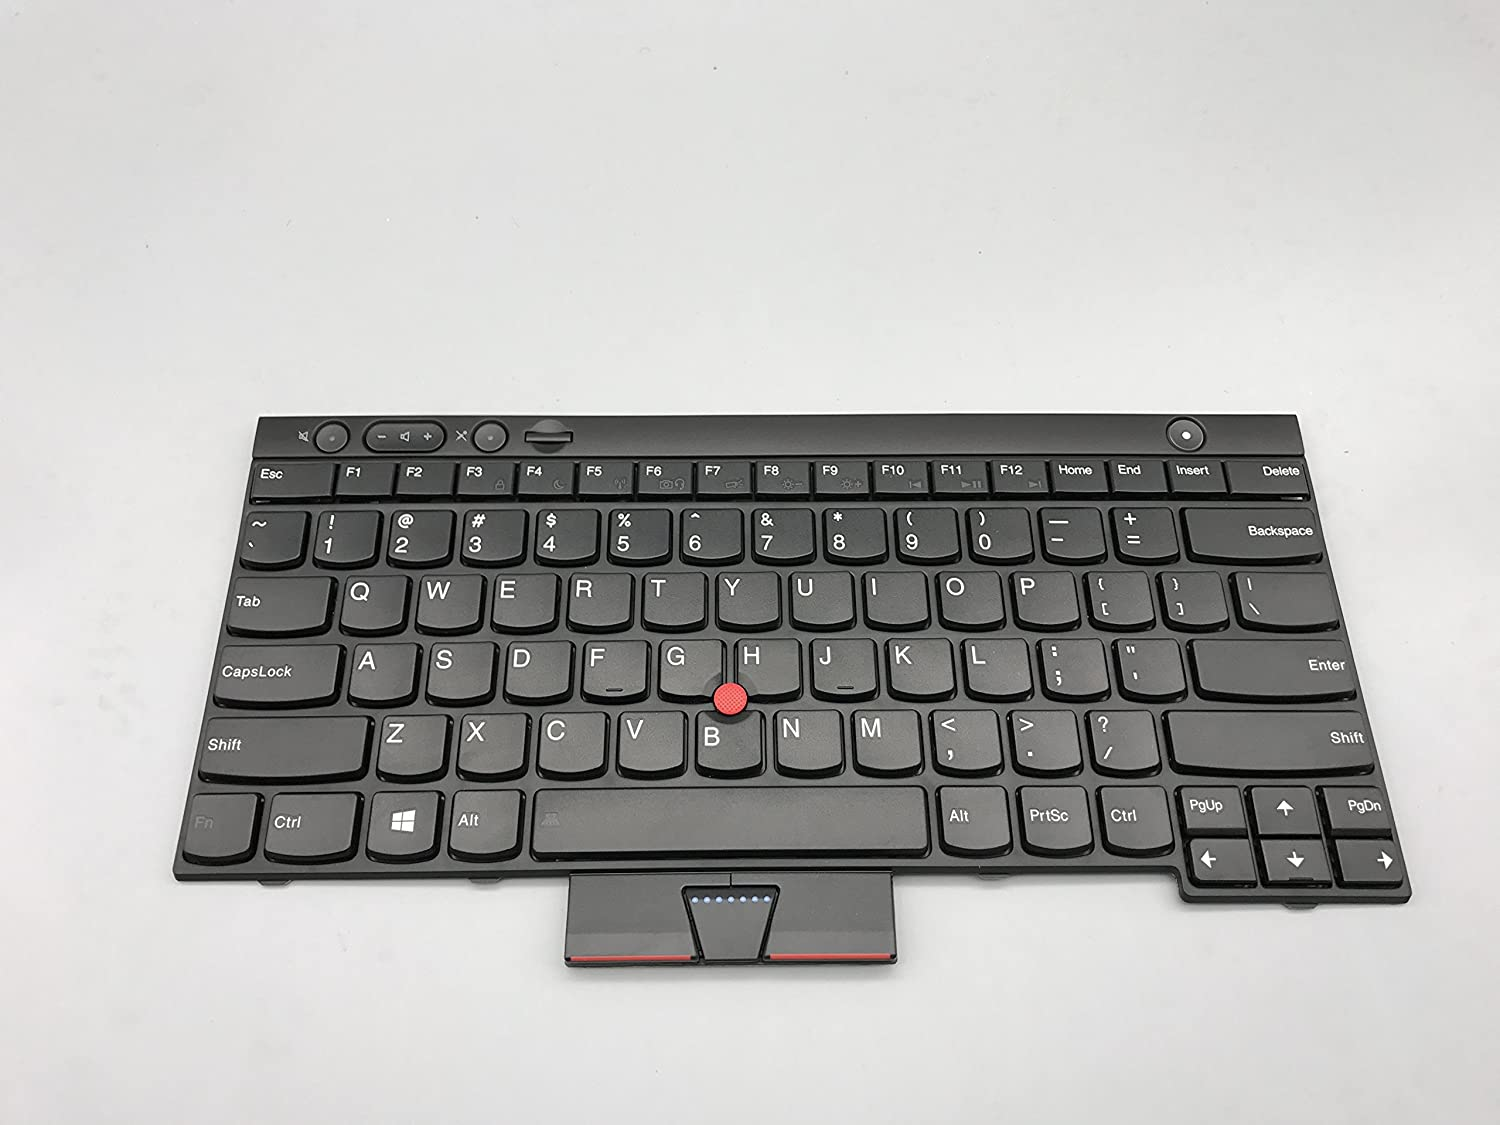 Keyboard for Lenovo IBM Thinkpad T430 T430S T430I (Not Fit T430U) X230 X230T X230I (Not Fit X230S) T530 W530 MP-11C23US-3871W 0C01885 04X1201 6C606J CS12-84-US